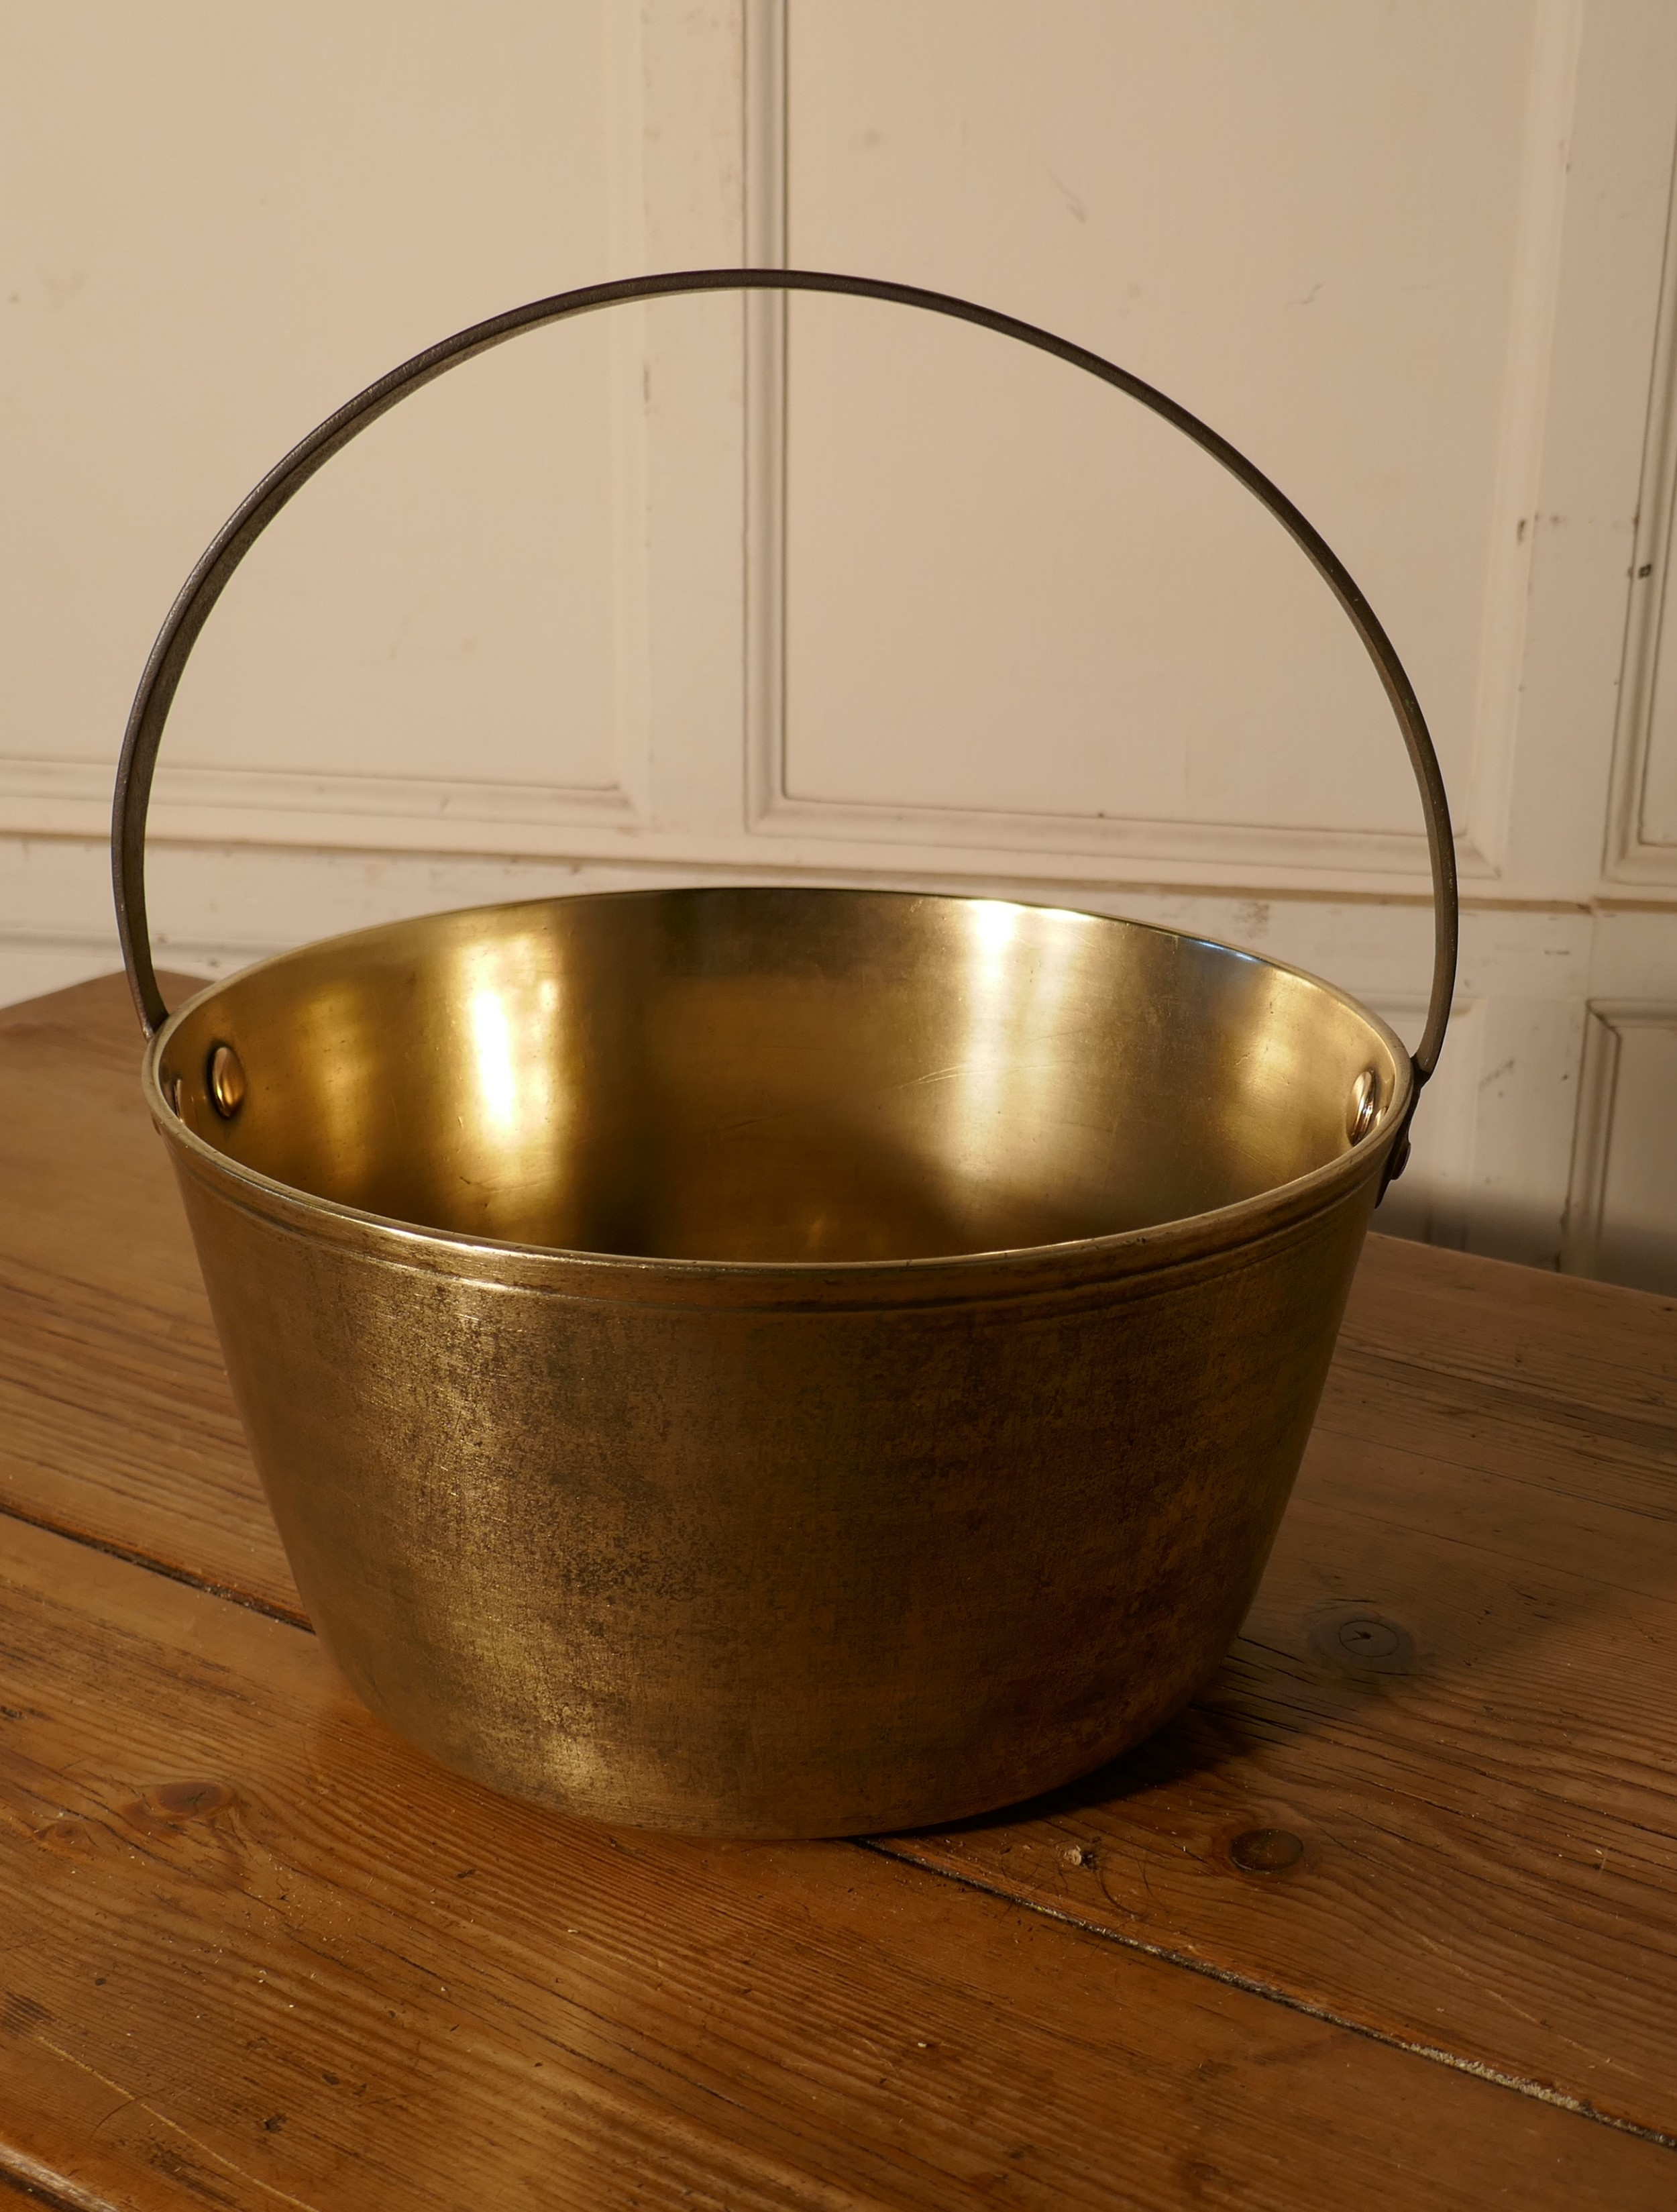 small 19th century brass preserving pan or cooking pot